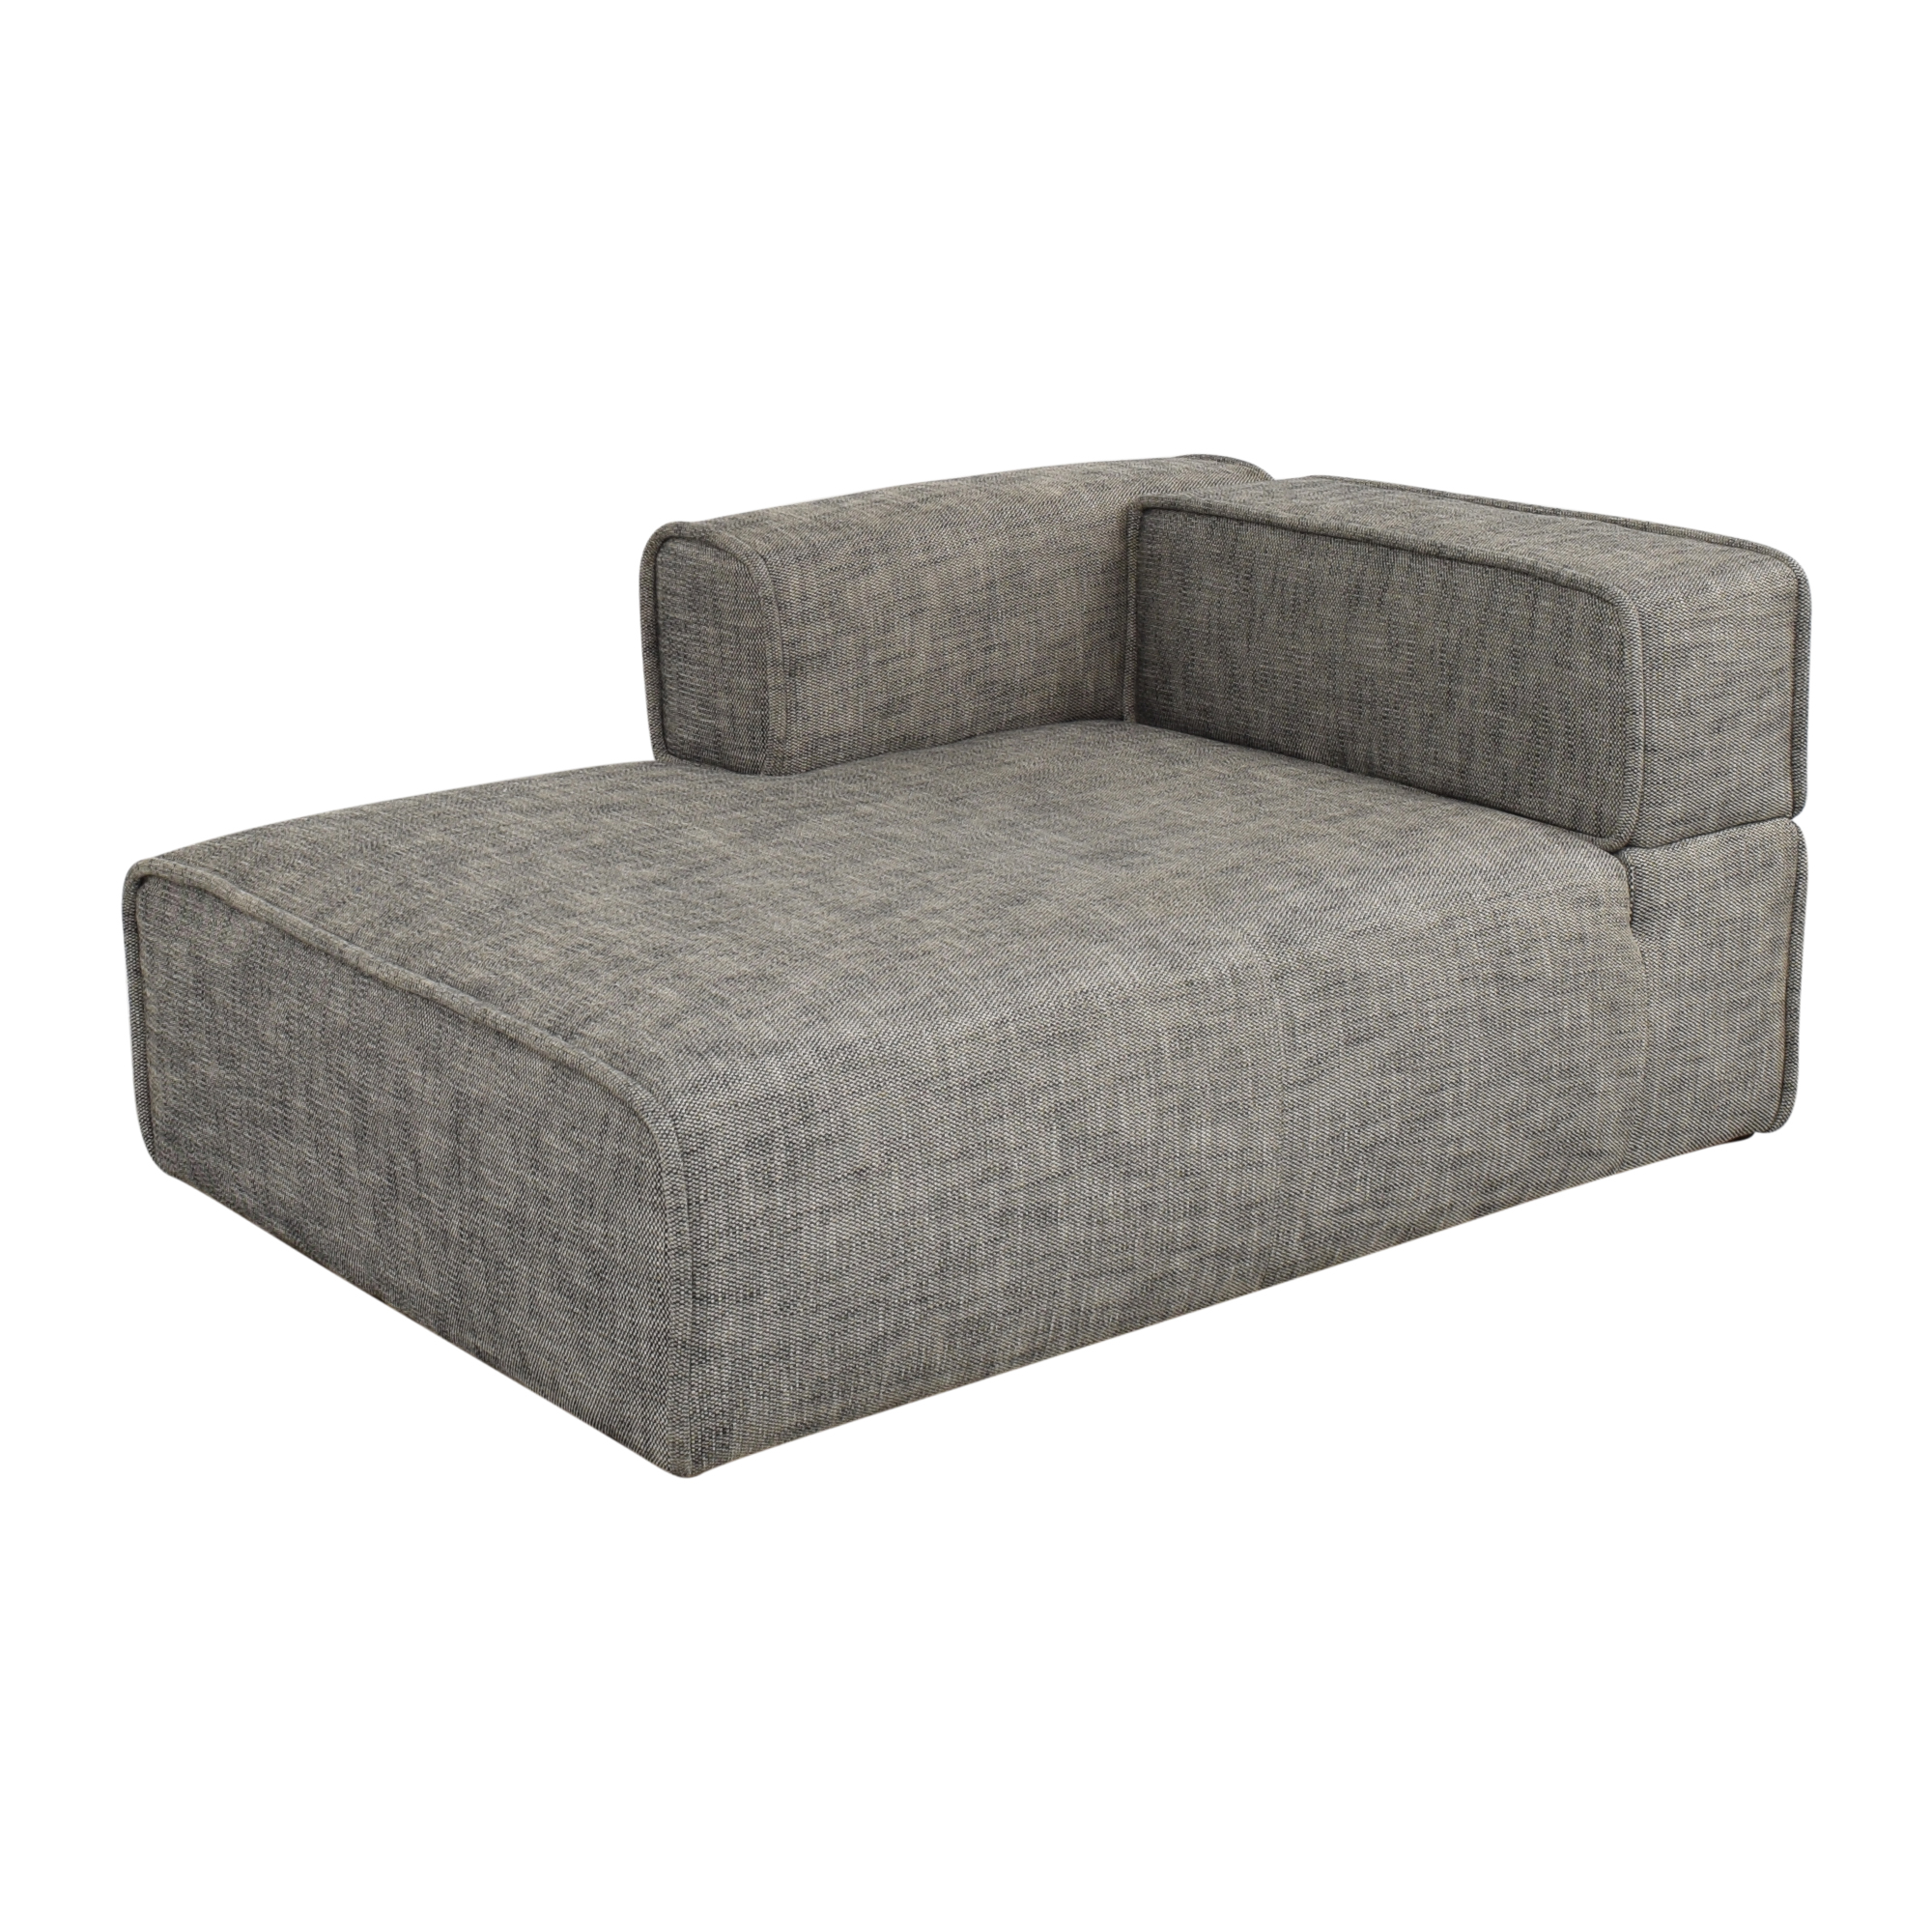 shop Article Article Quadra Left Chaise Module online